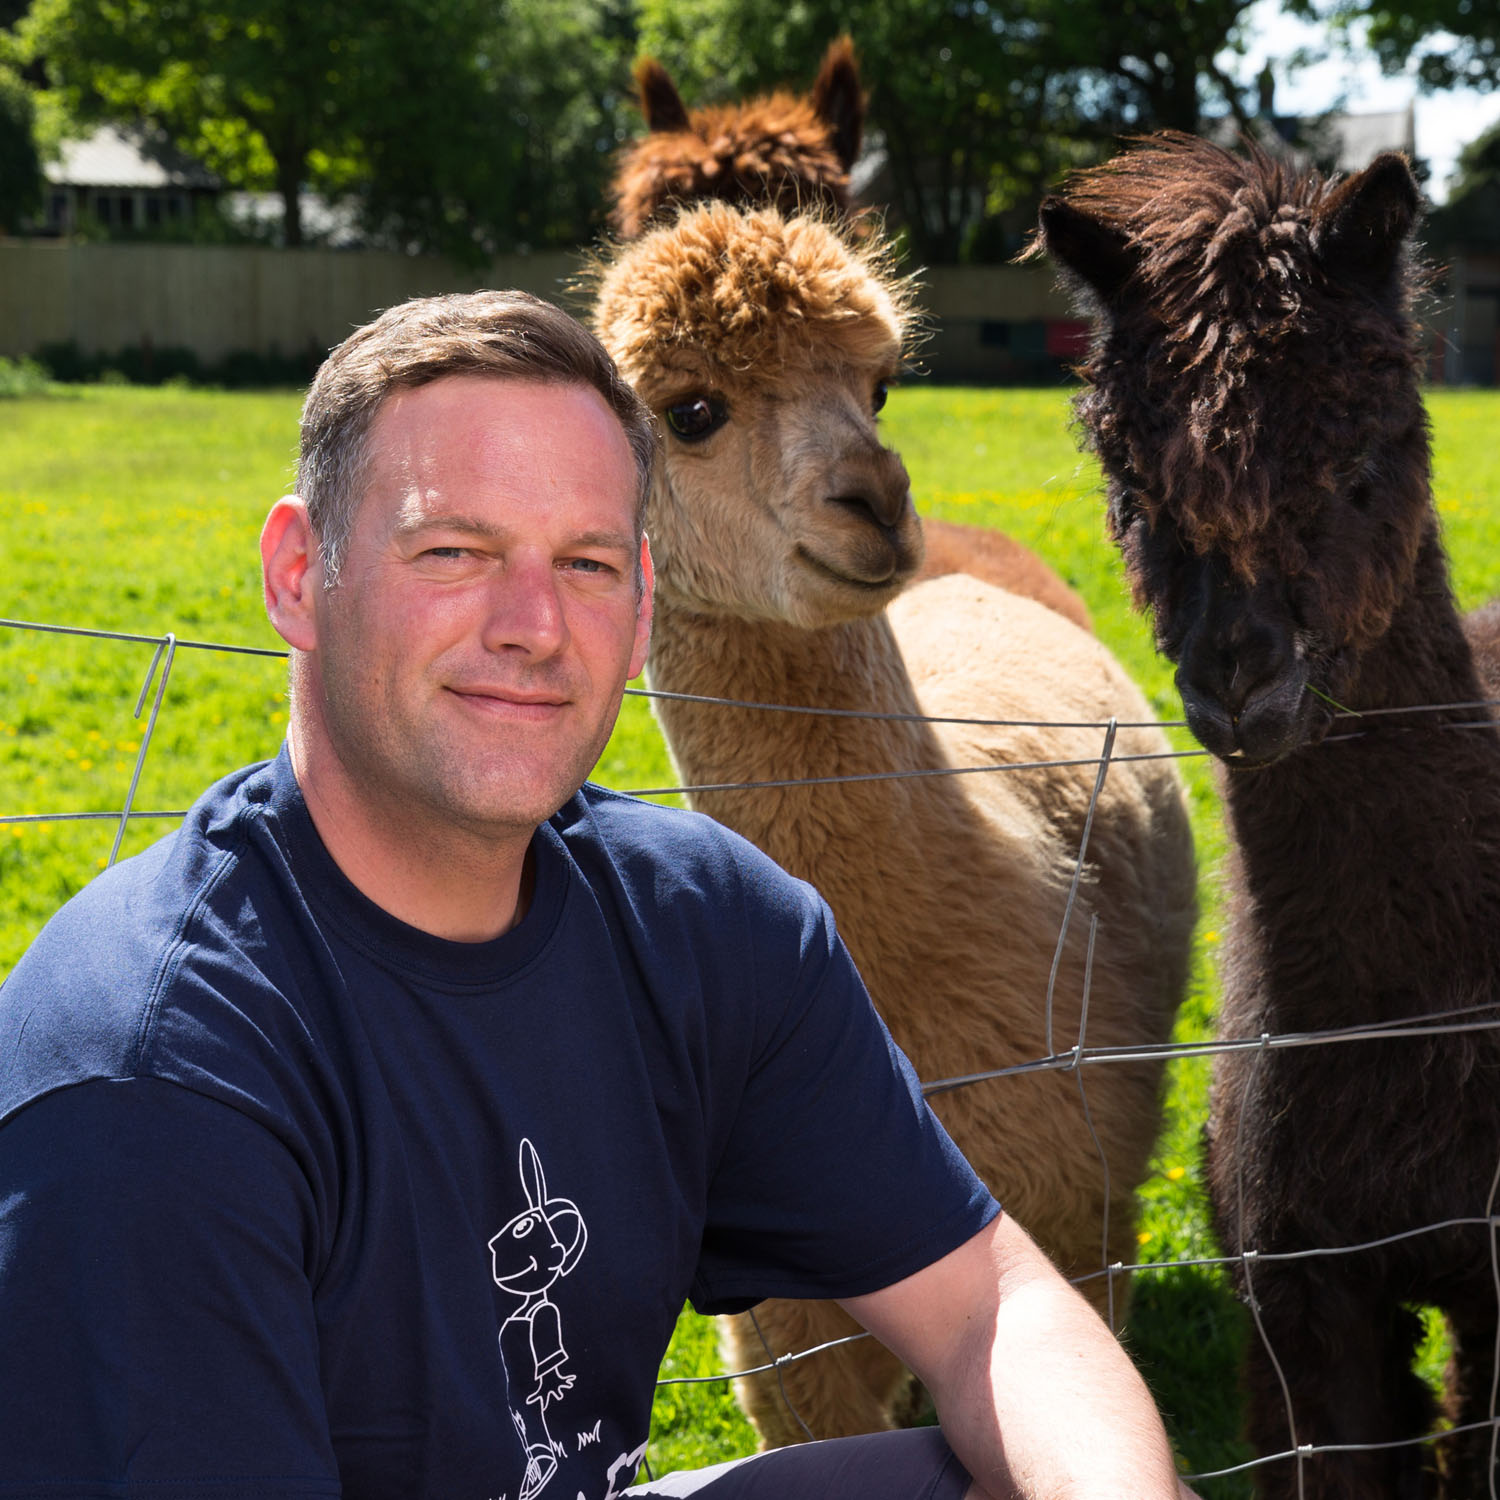 Headshot of charity worker with alpacas in the background